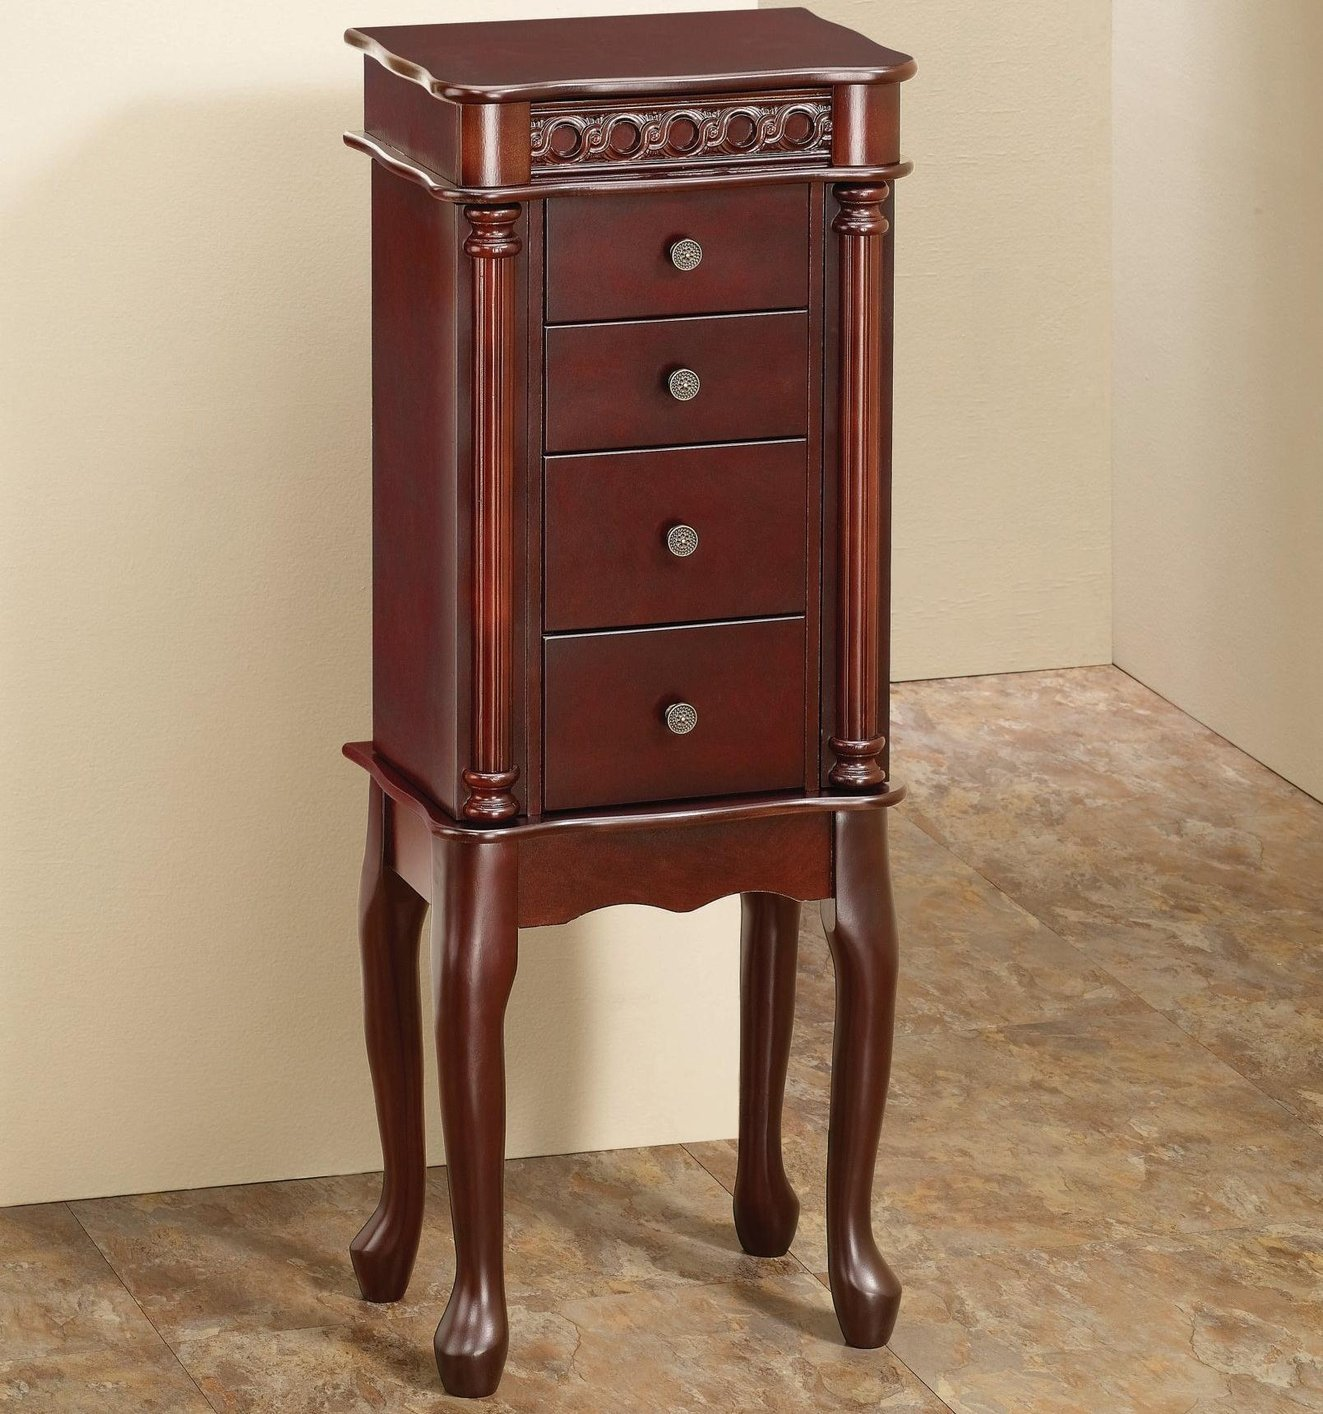 Coaster brown wood jewelry armoire steal a sofa